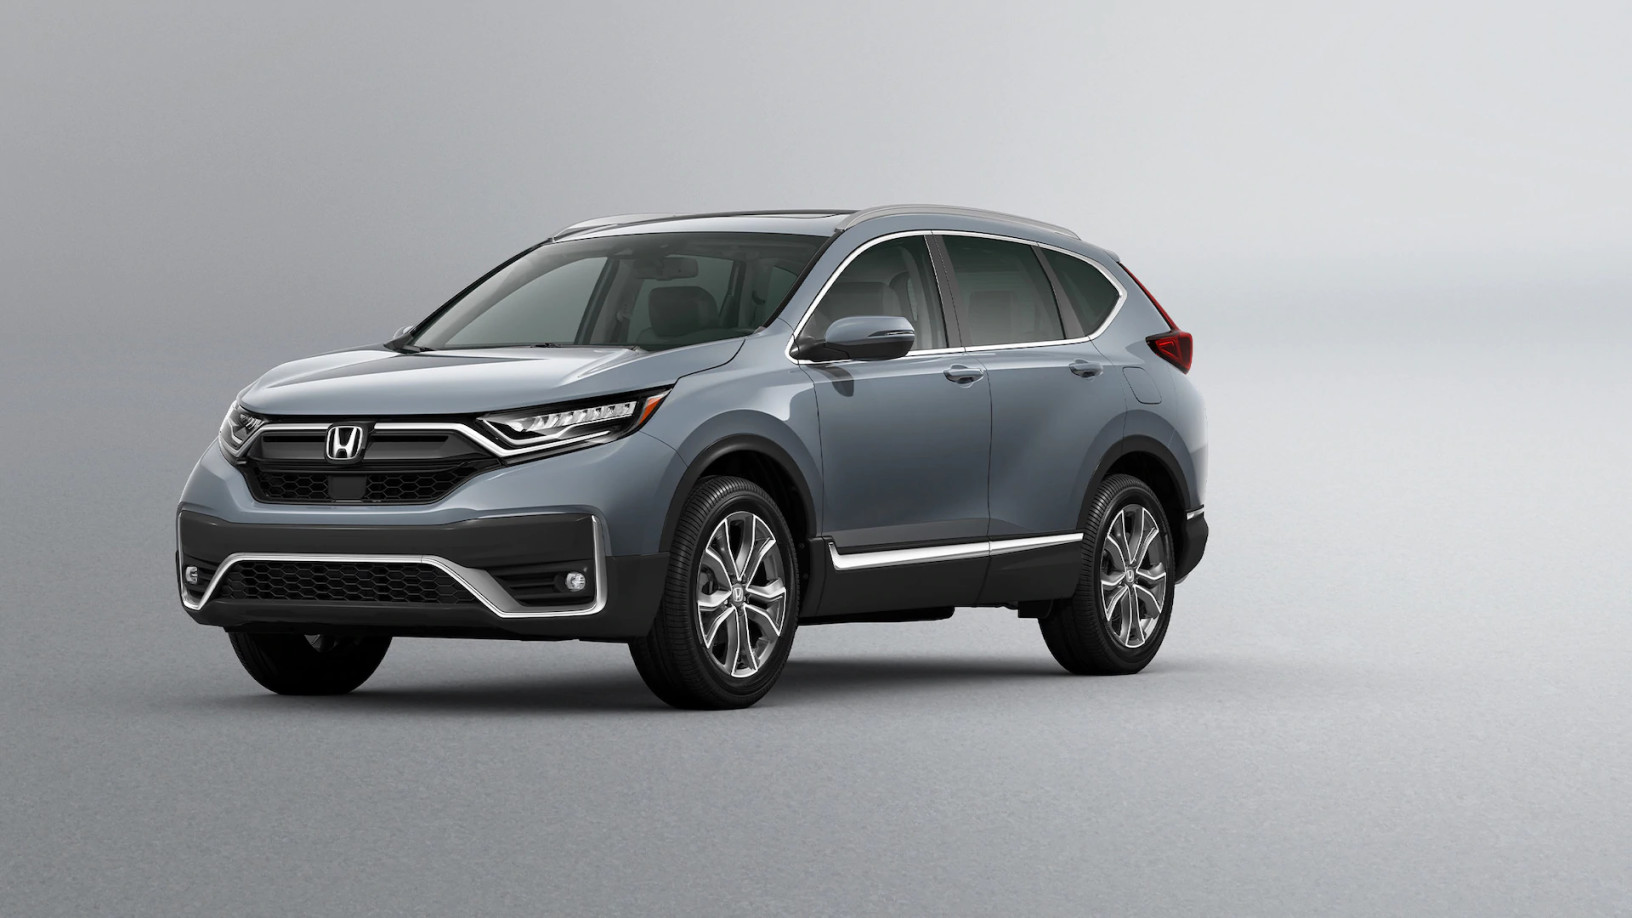 2020 Honda CR-V for Sale near College Park, MD